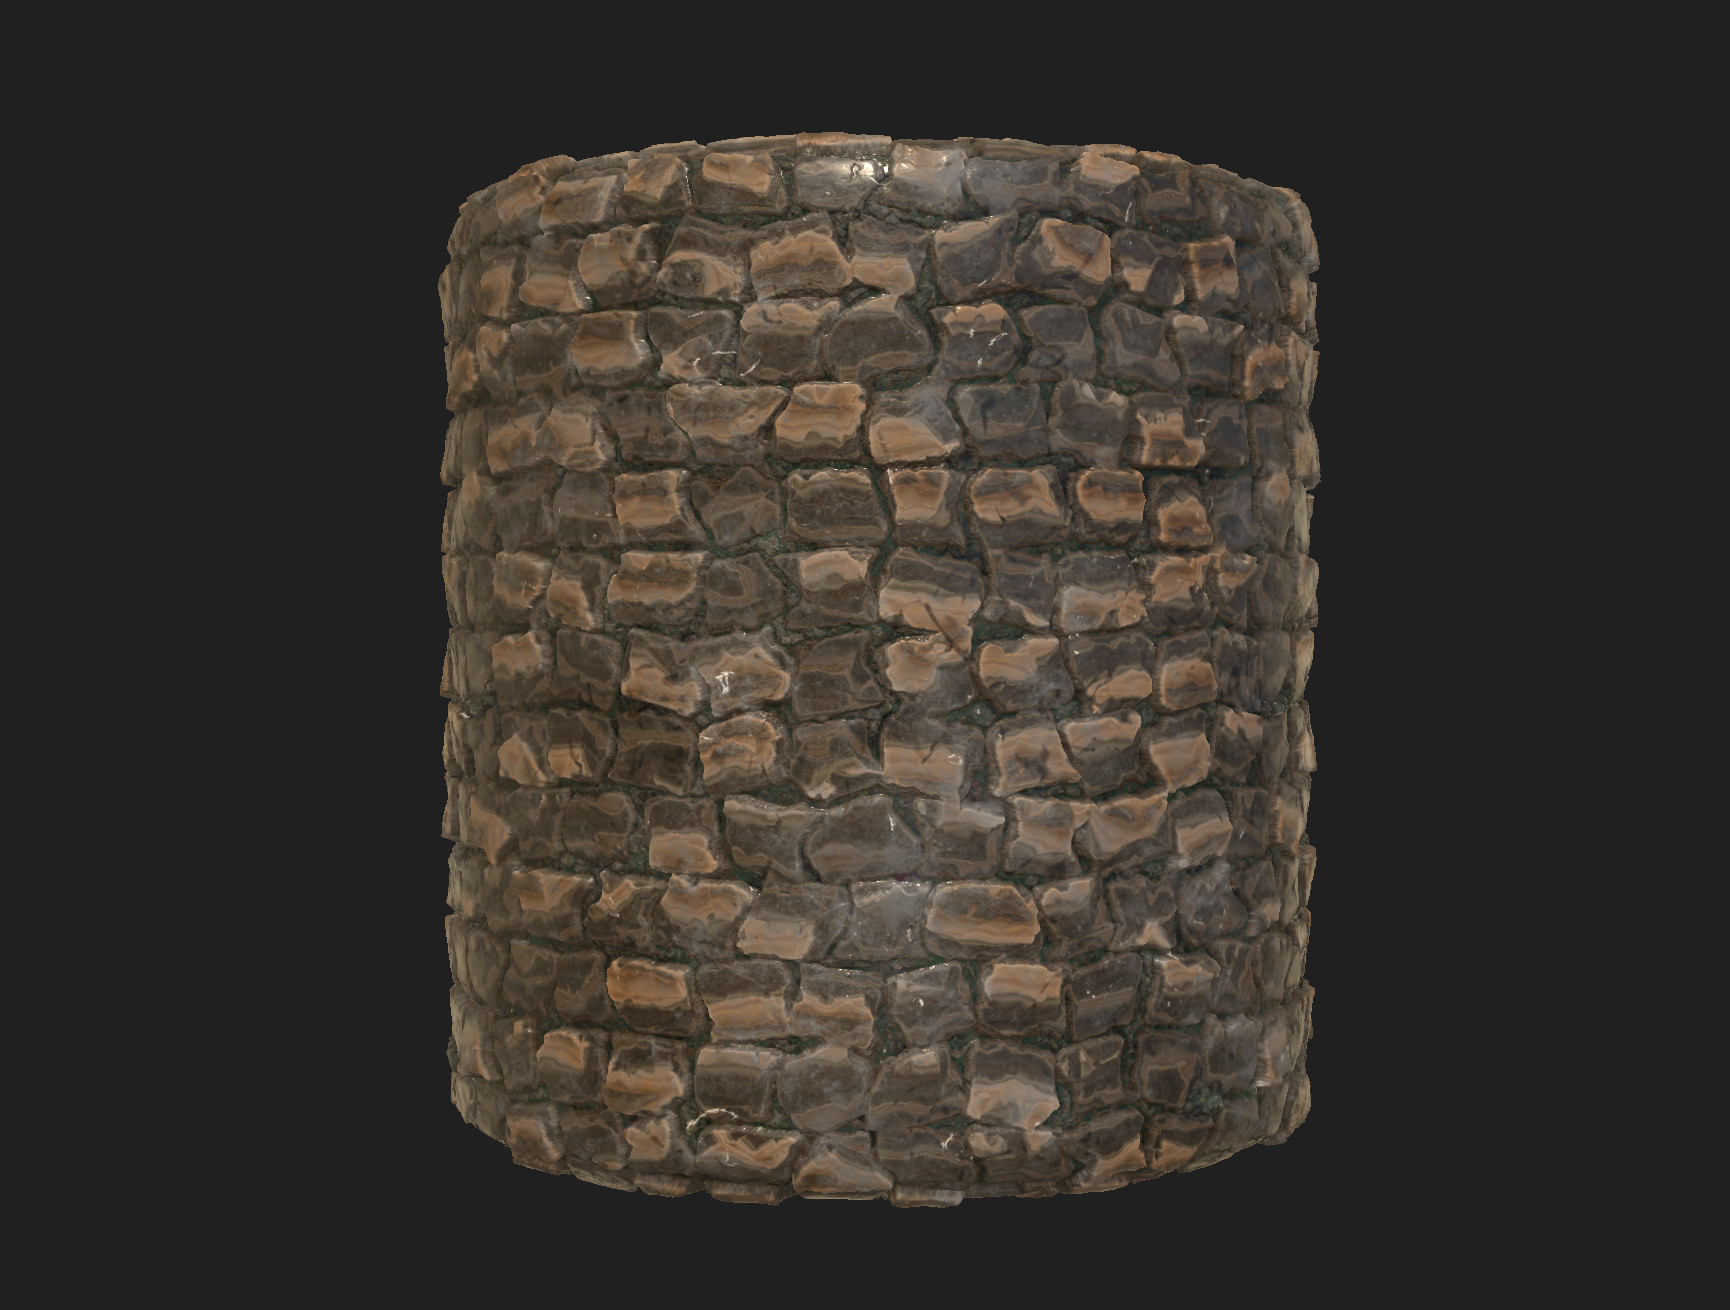 Substance Designer Screen capture